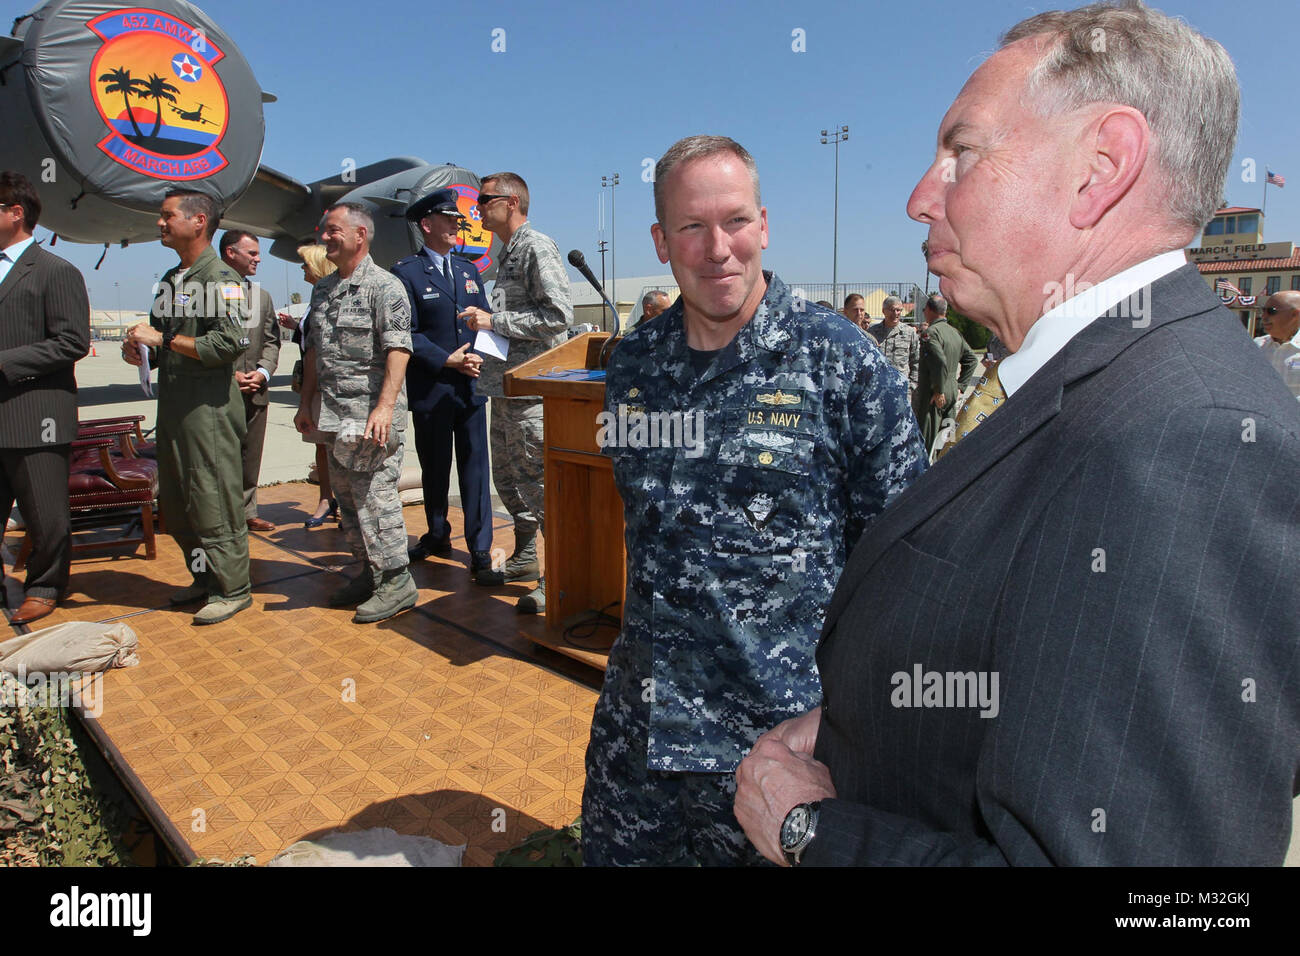 150811-N-HW977-463 MARCH AIR RESERVE BASE, Calif. (Aug. 11, 2015) State Senator Richard Roth, 31st Senate District - Stock Image